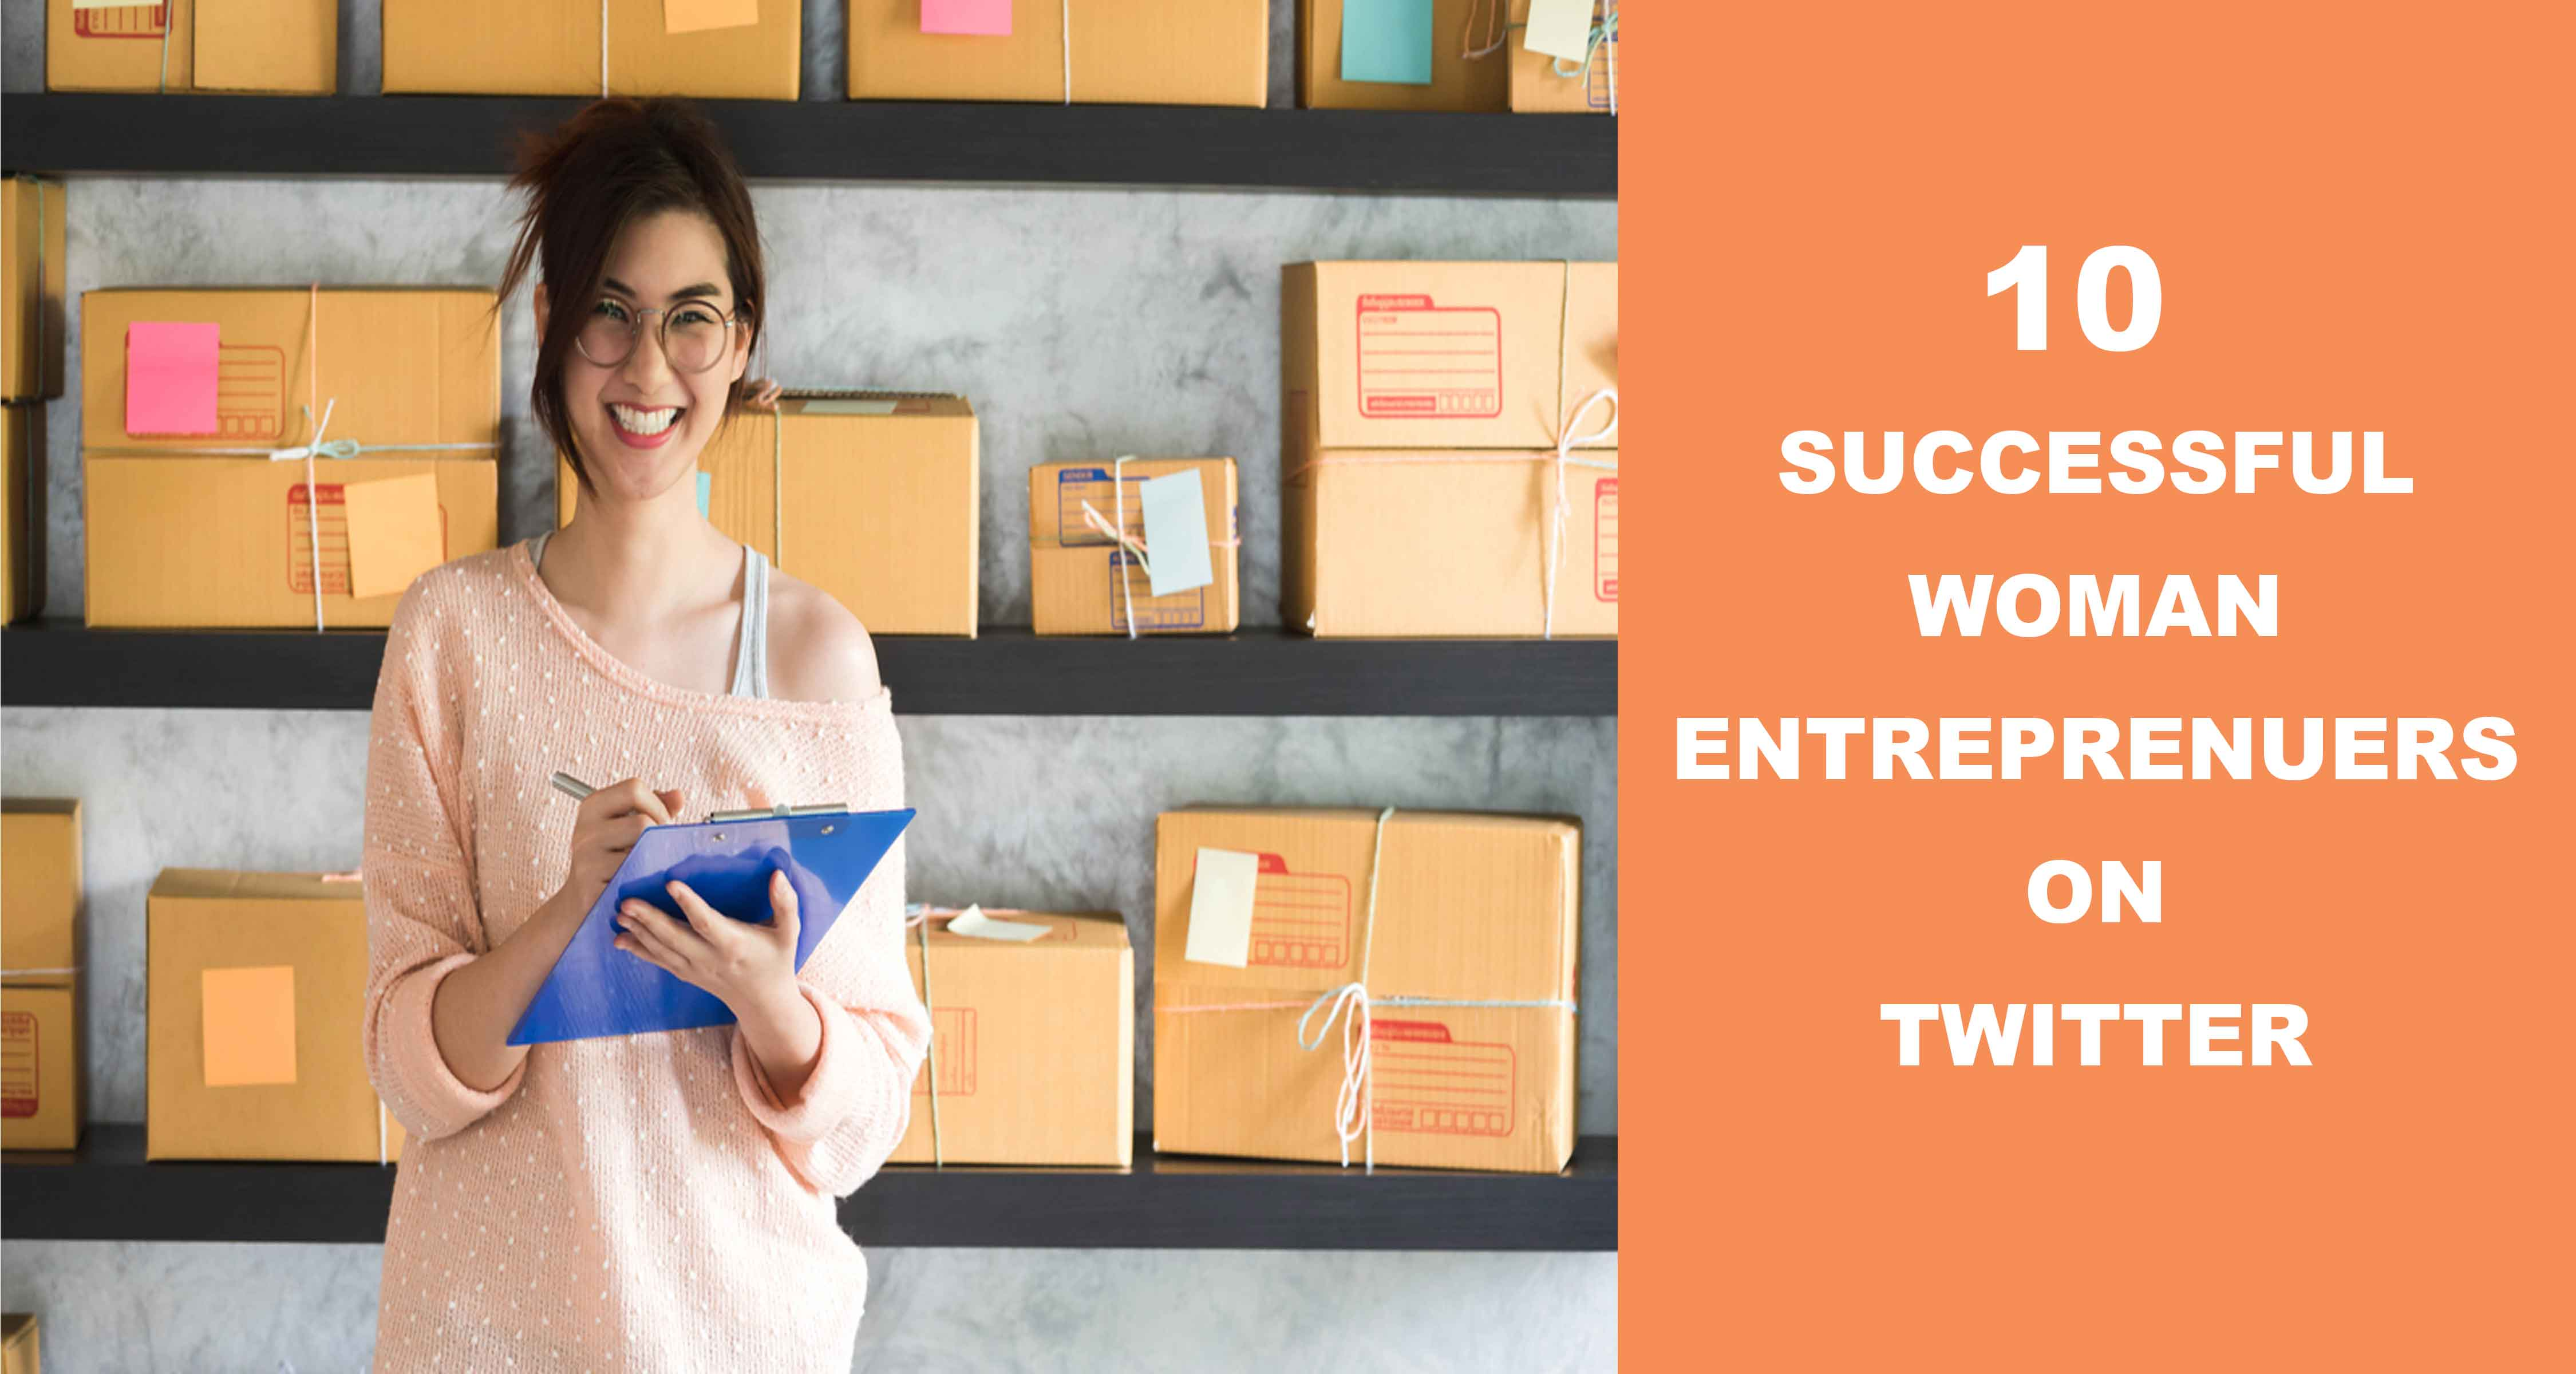 10-Successful-Woman-Entreprenuers-on-Twitter